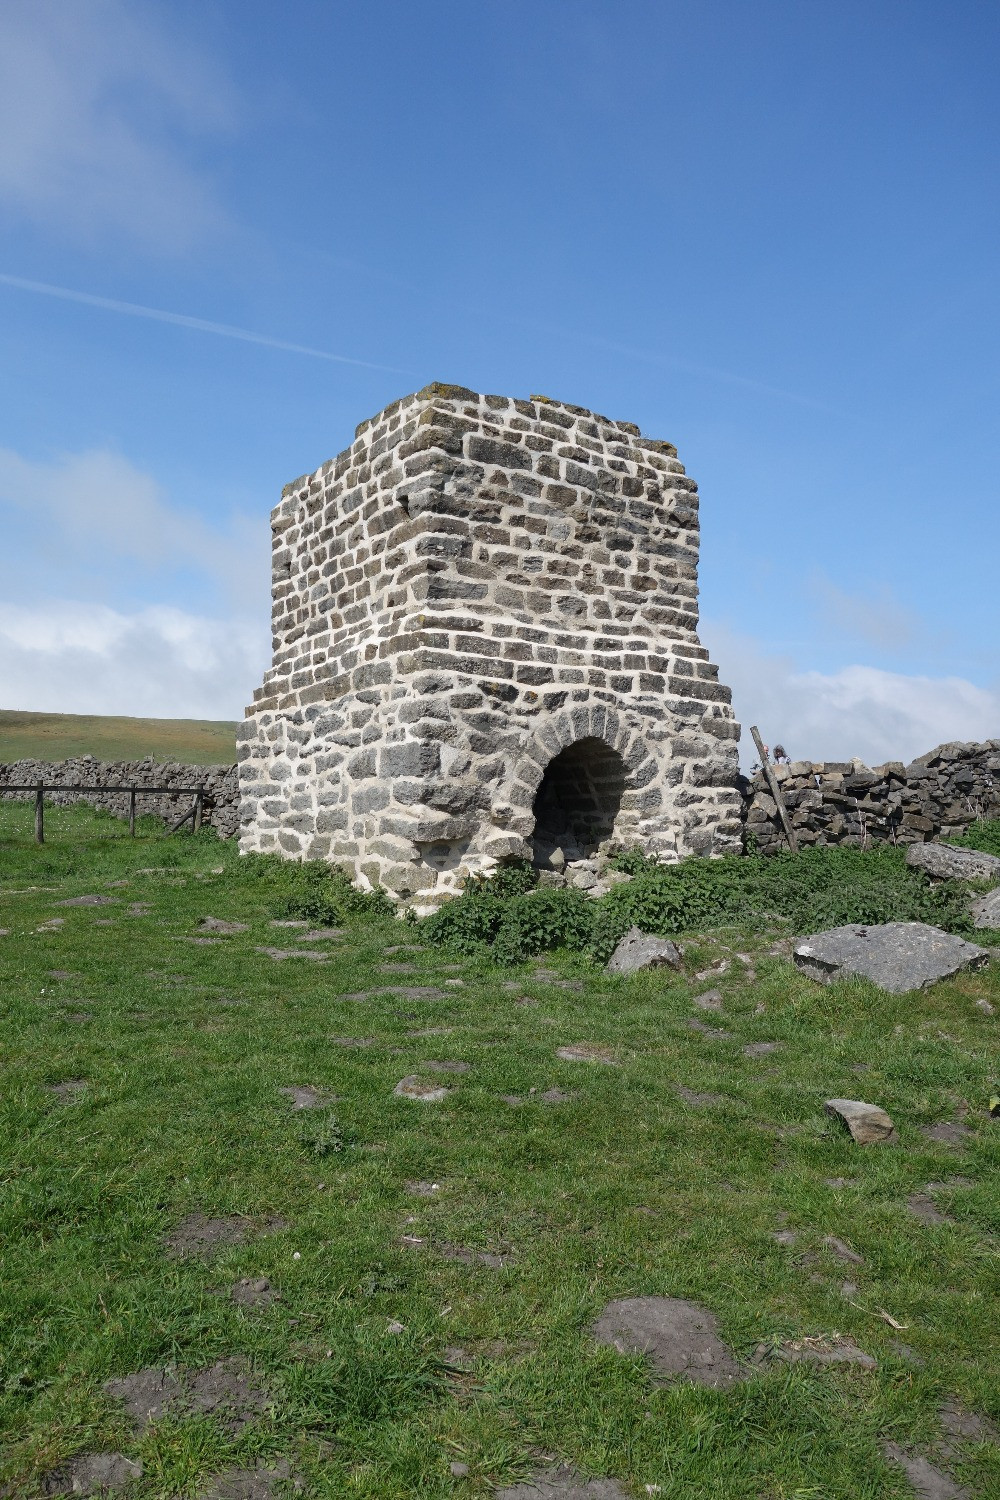 Toft Gate Lime Kiln Chimney, just 6 minutes from River View Pateley